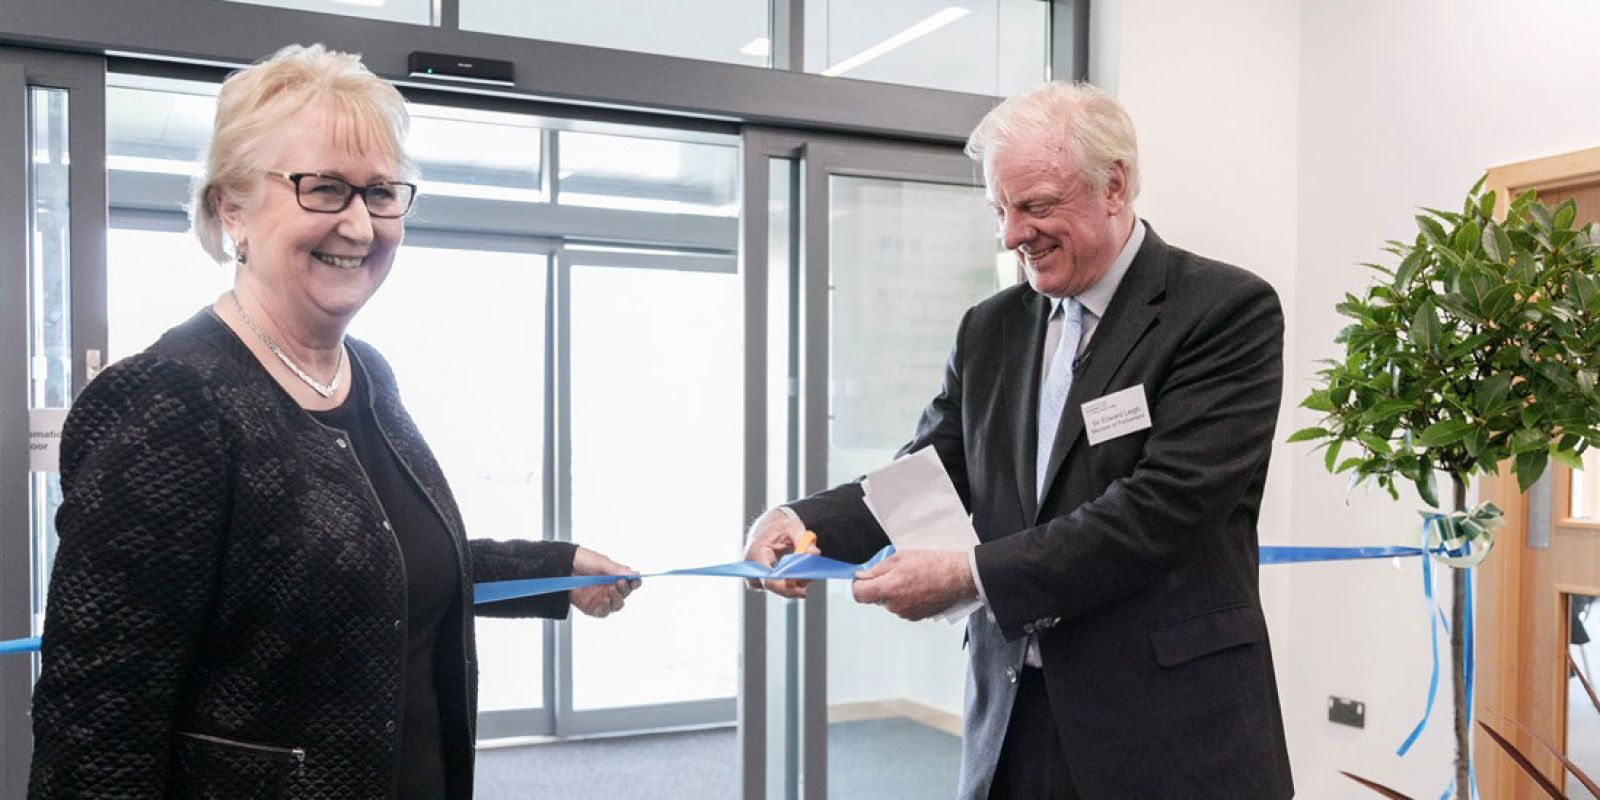 Jeanette Dawson, Principal of Bishop Burton College, with Sir Edward Leigh at the opening ceremony